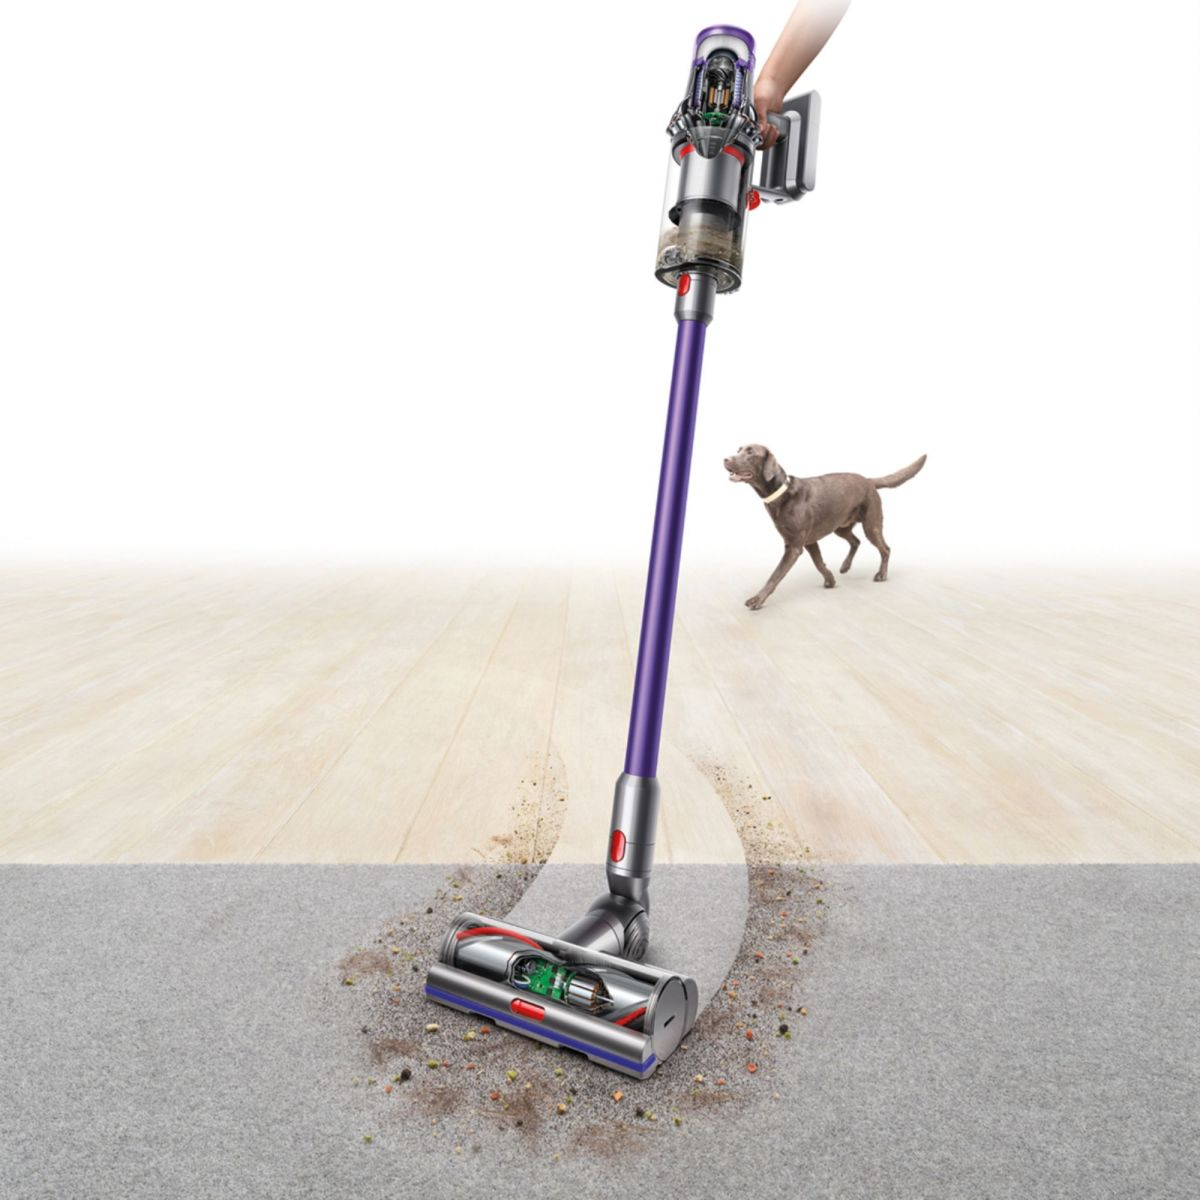 Get a Dyson V11 cordless vacuum for up to $150 off